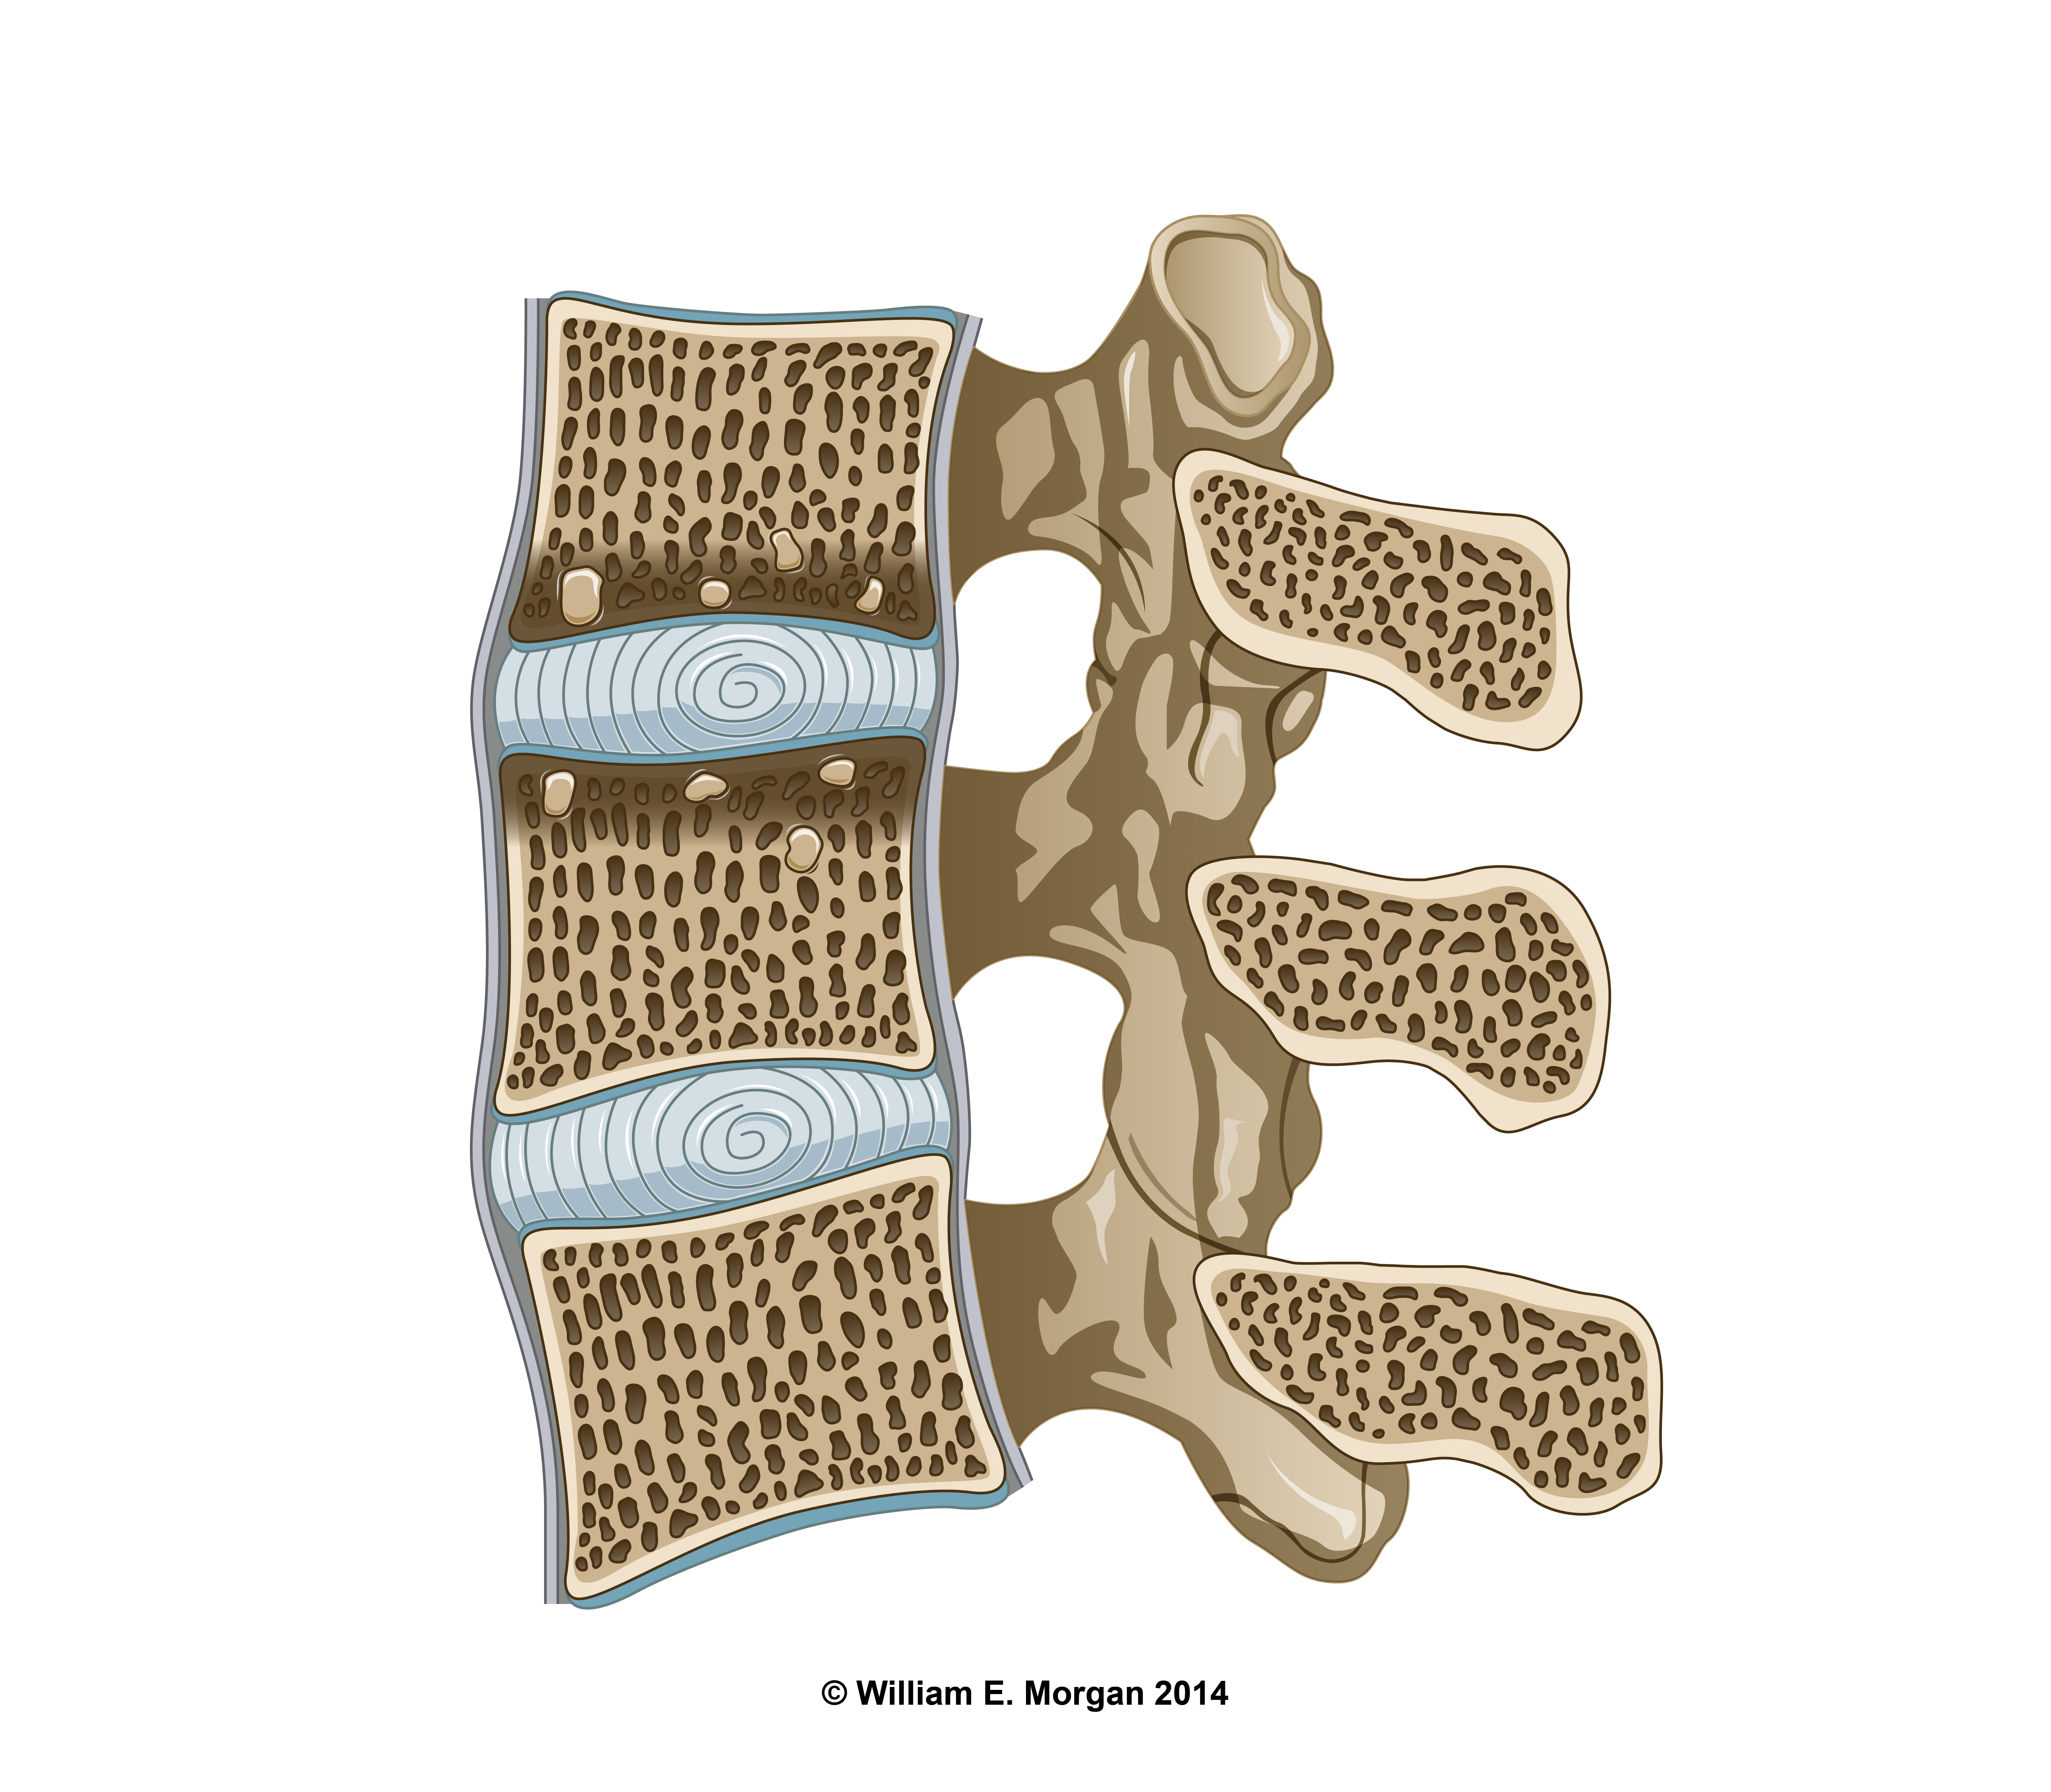 Sclerotic changes of the cortical bone and thickening of the endplates are indicative of Modic 3 changes.